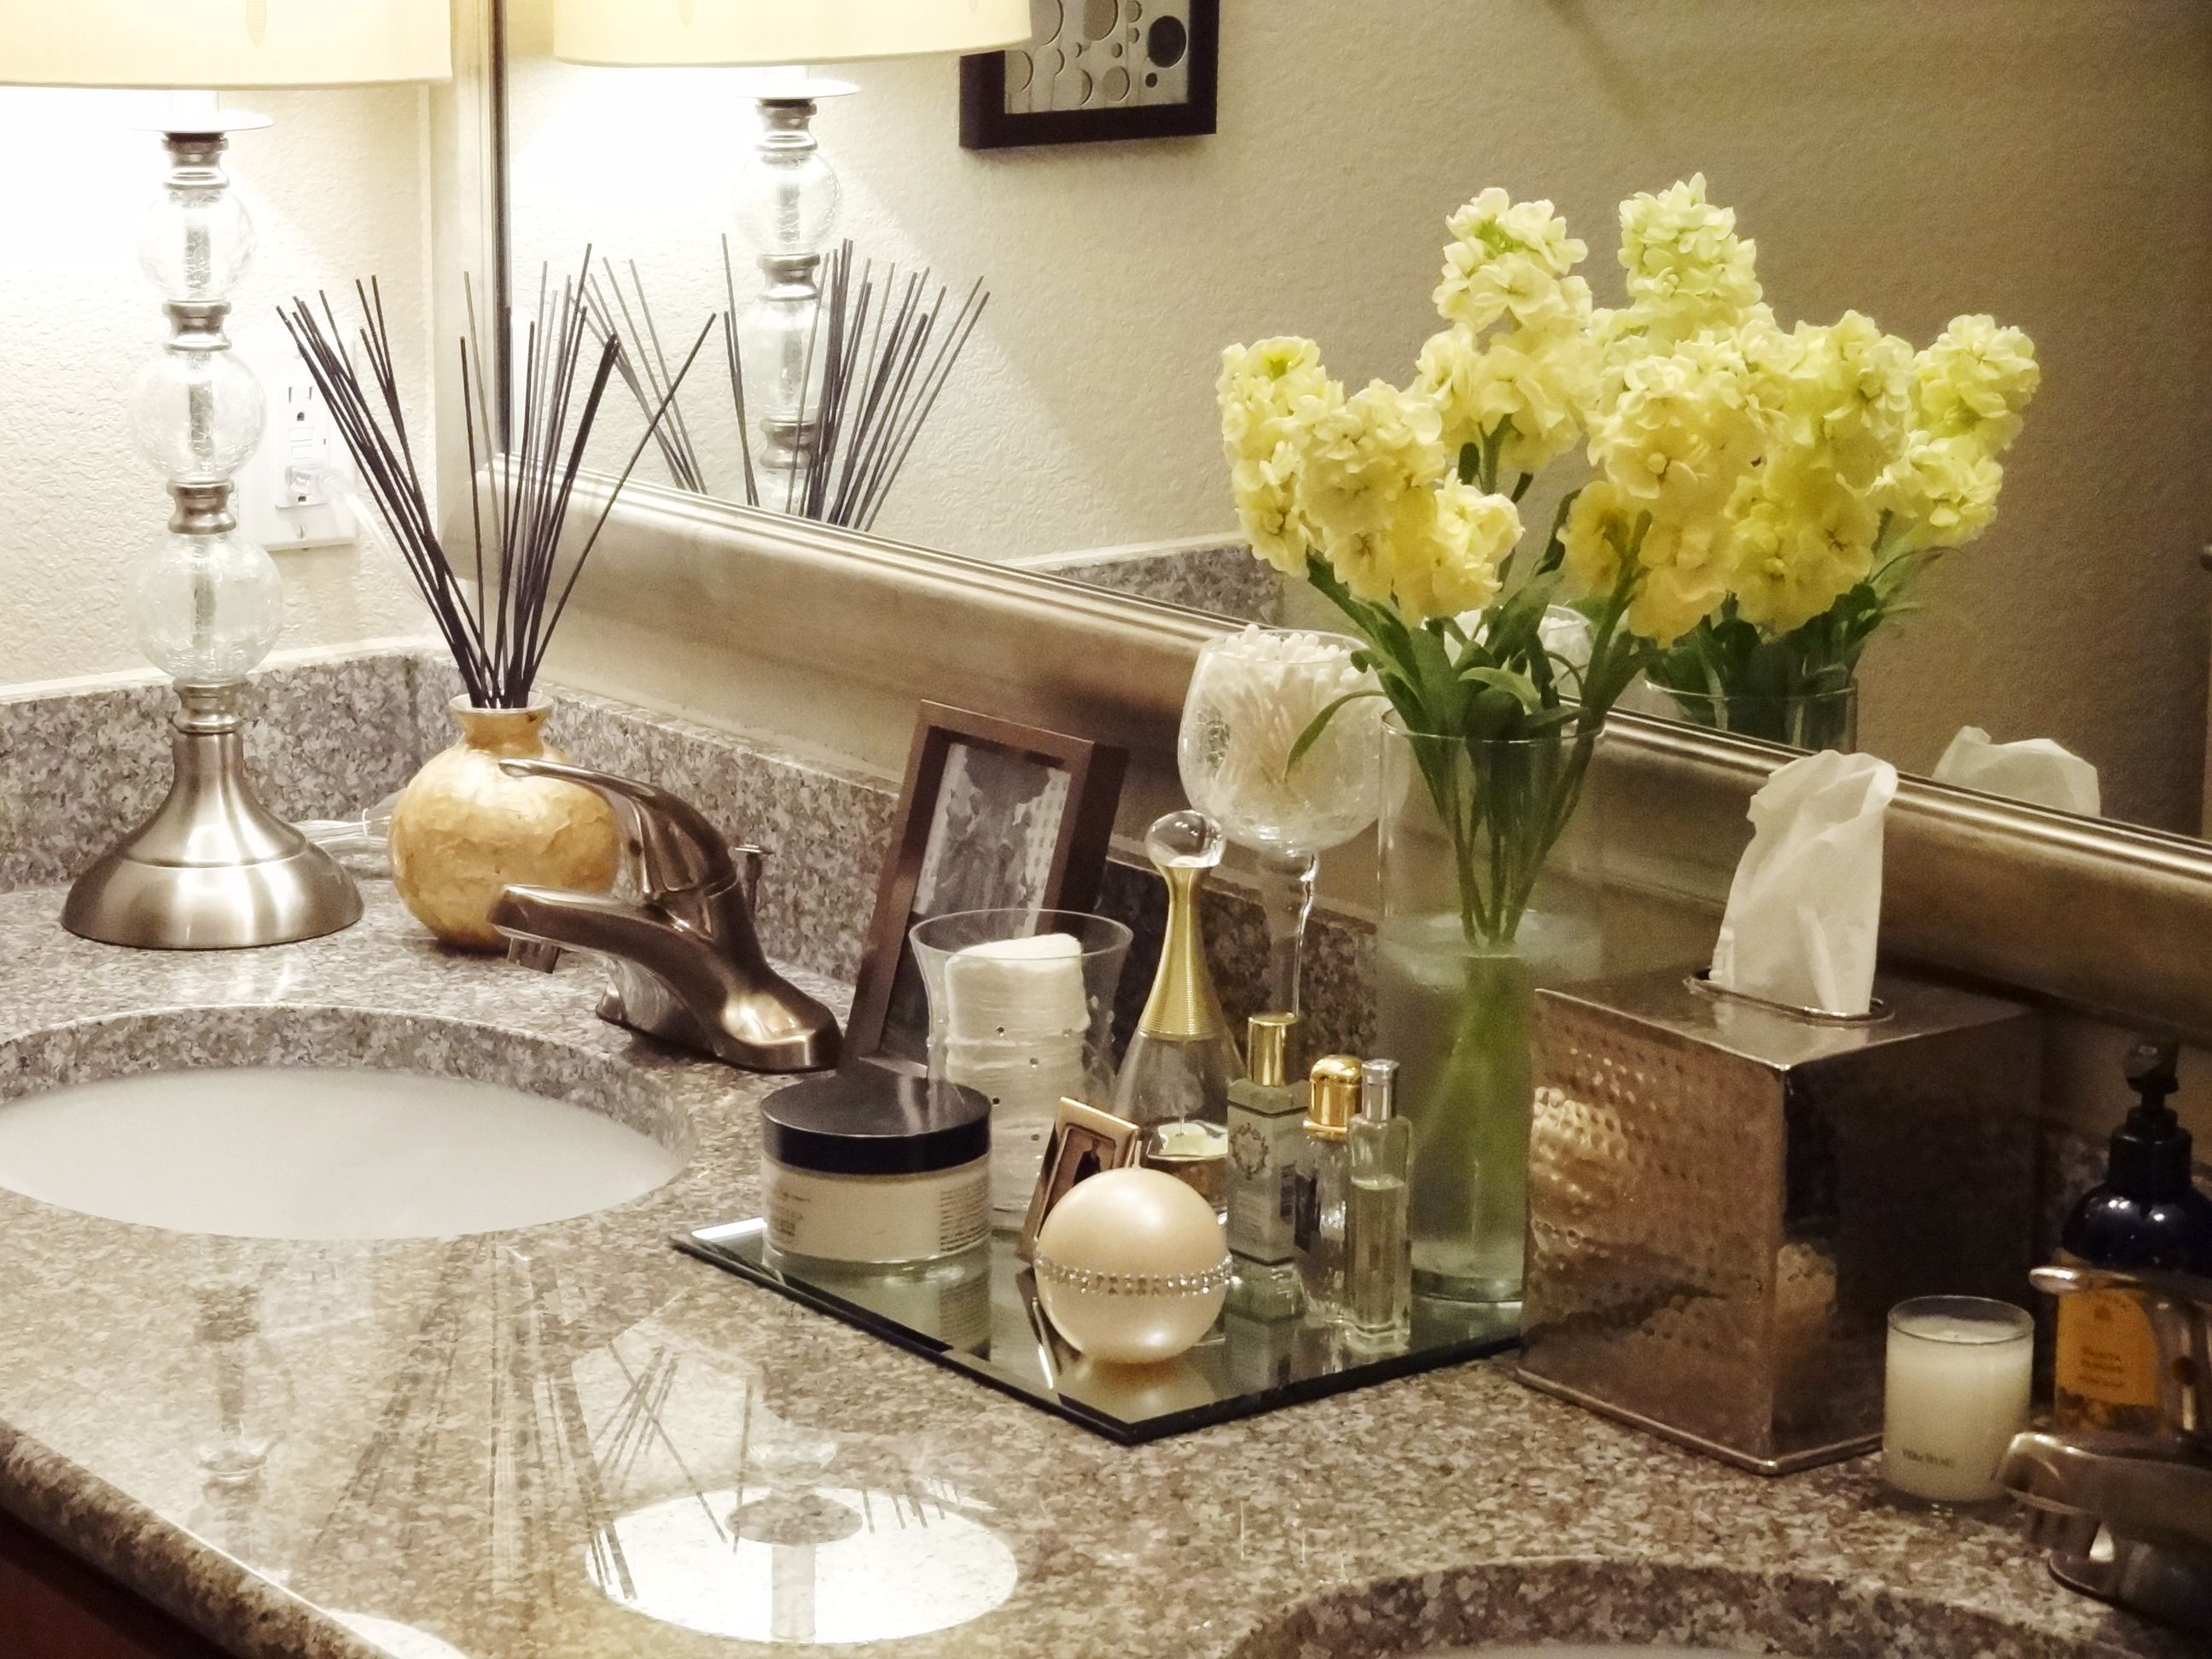 Charming Girlie Bathroom Counter Decor